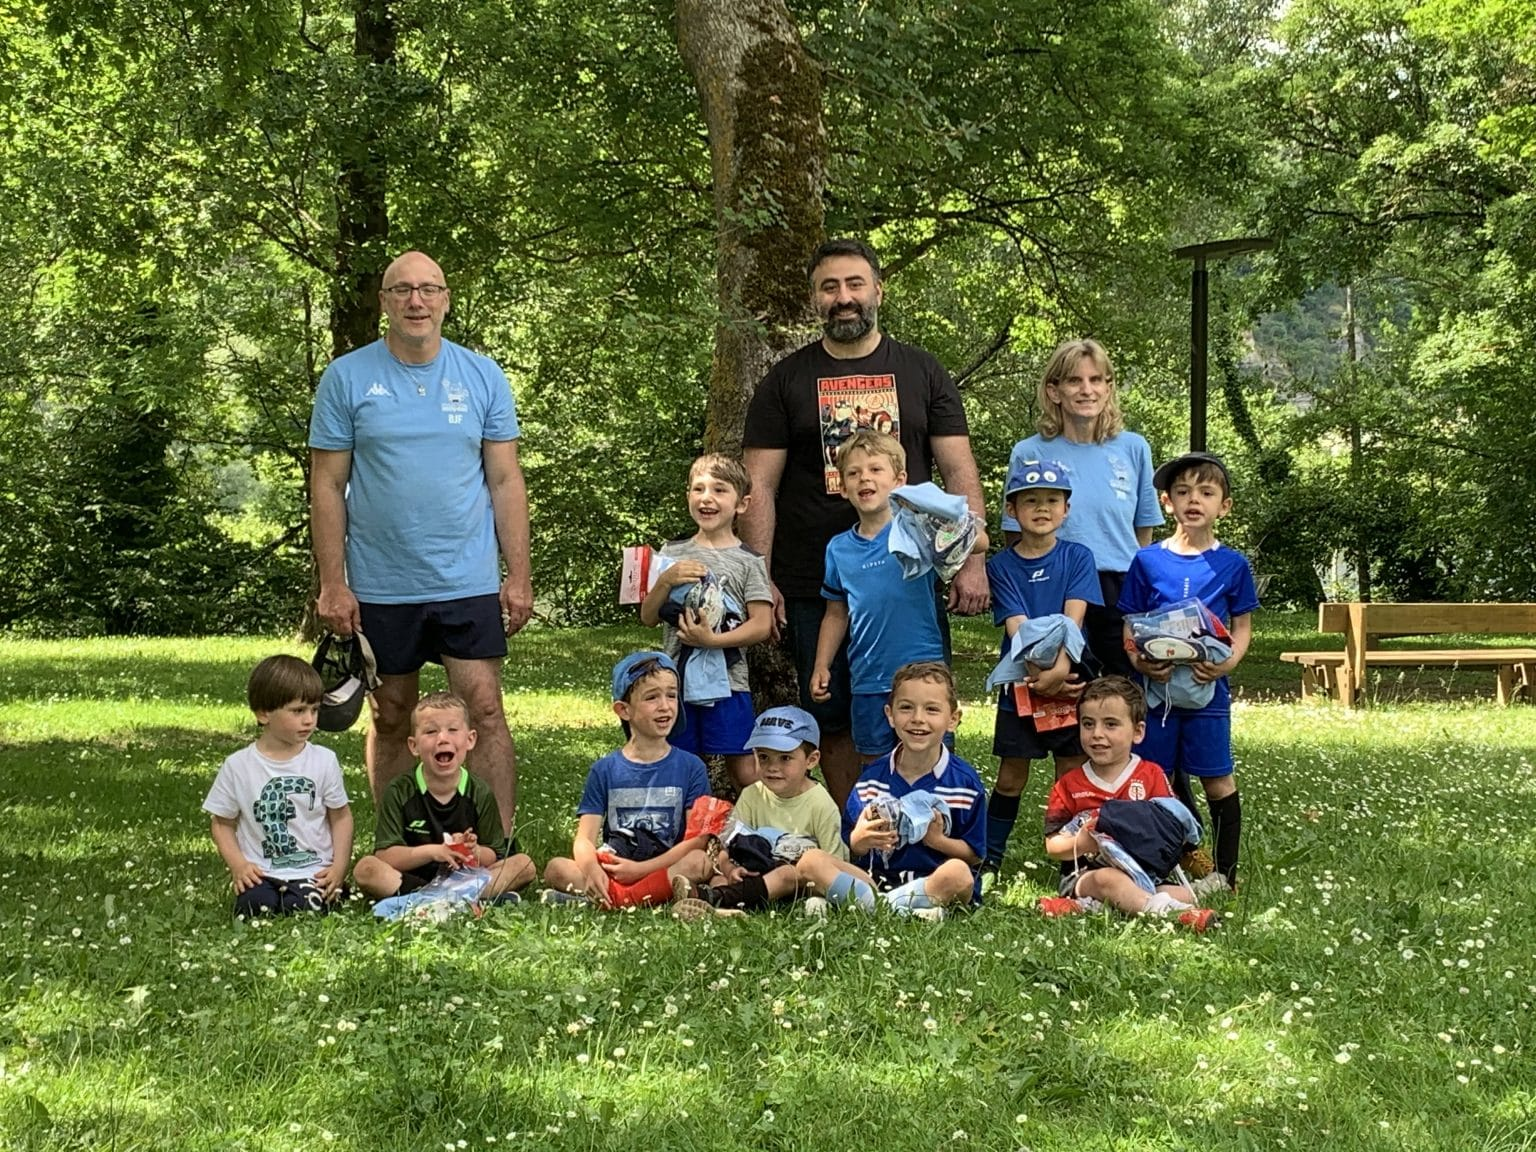 les petits diables cahors rugby